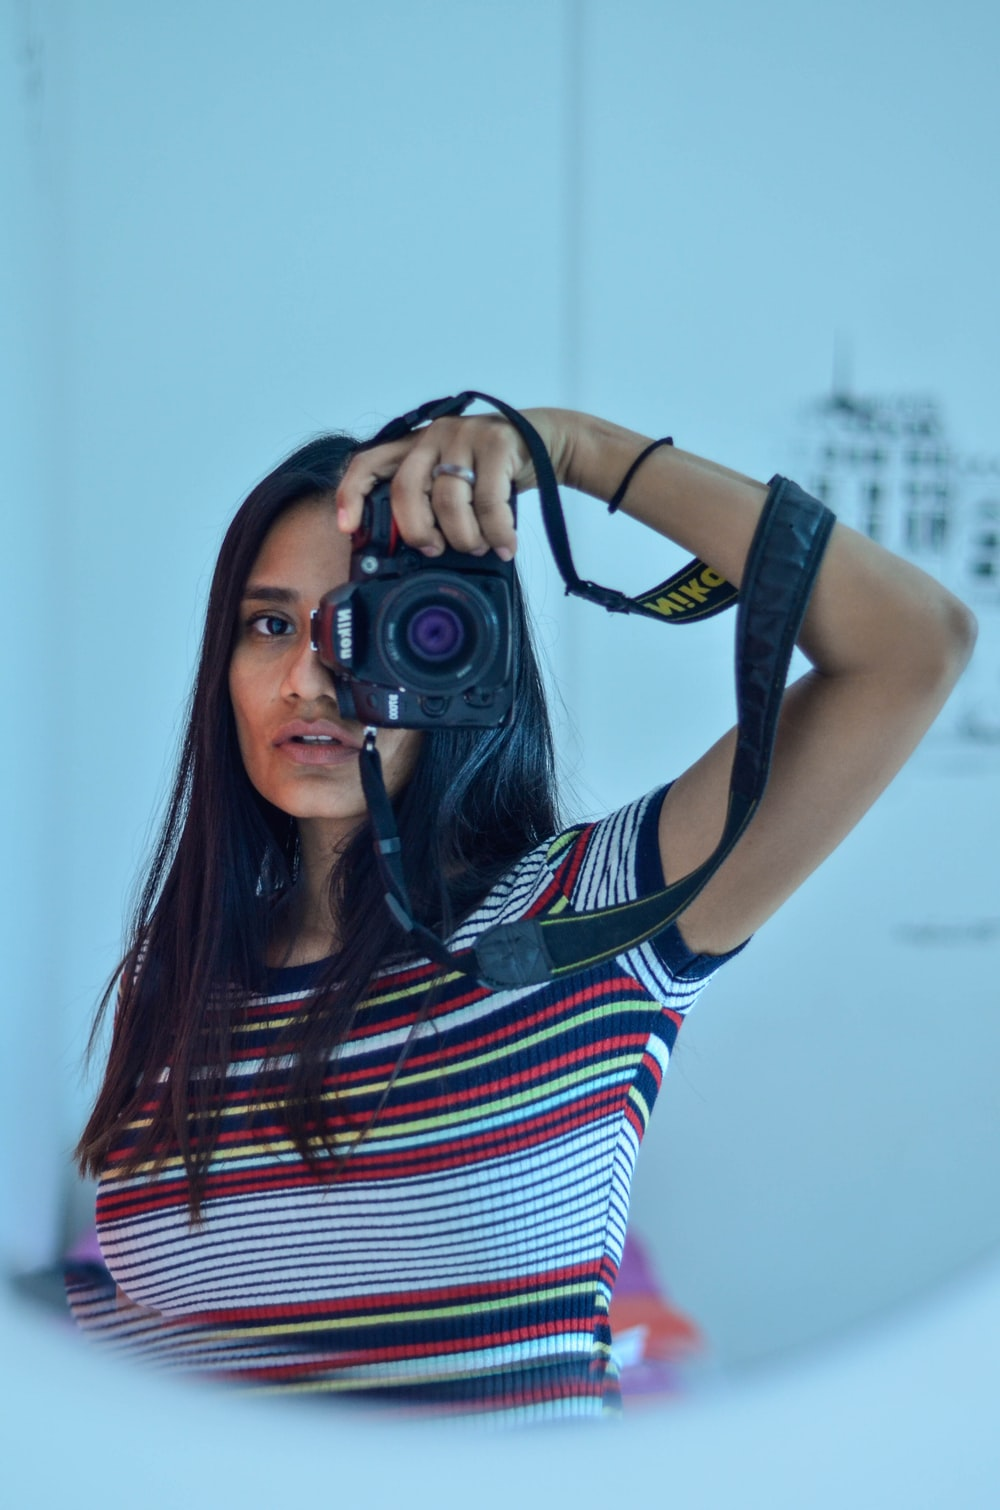 woman in striped t-shirt holding camera